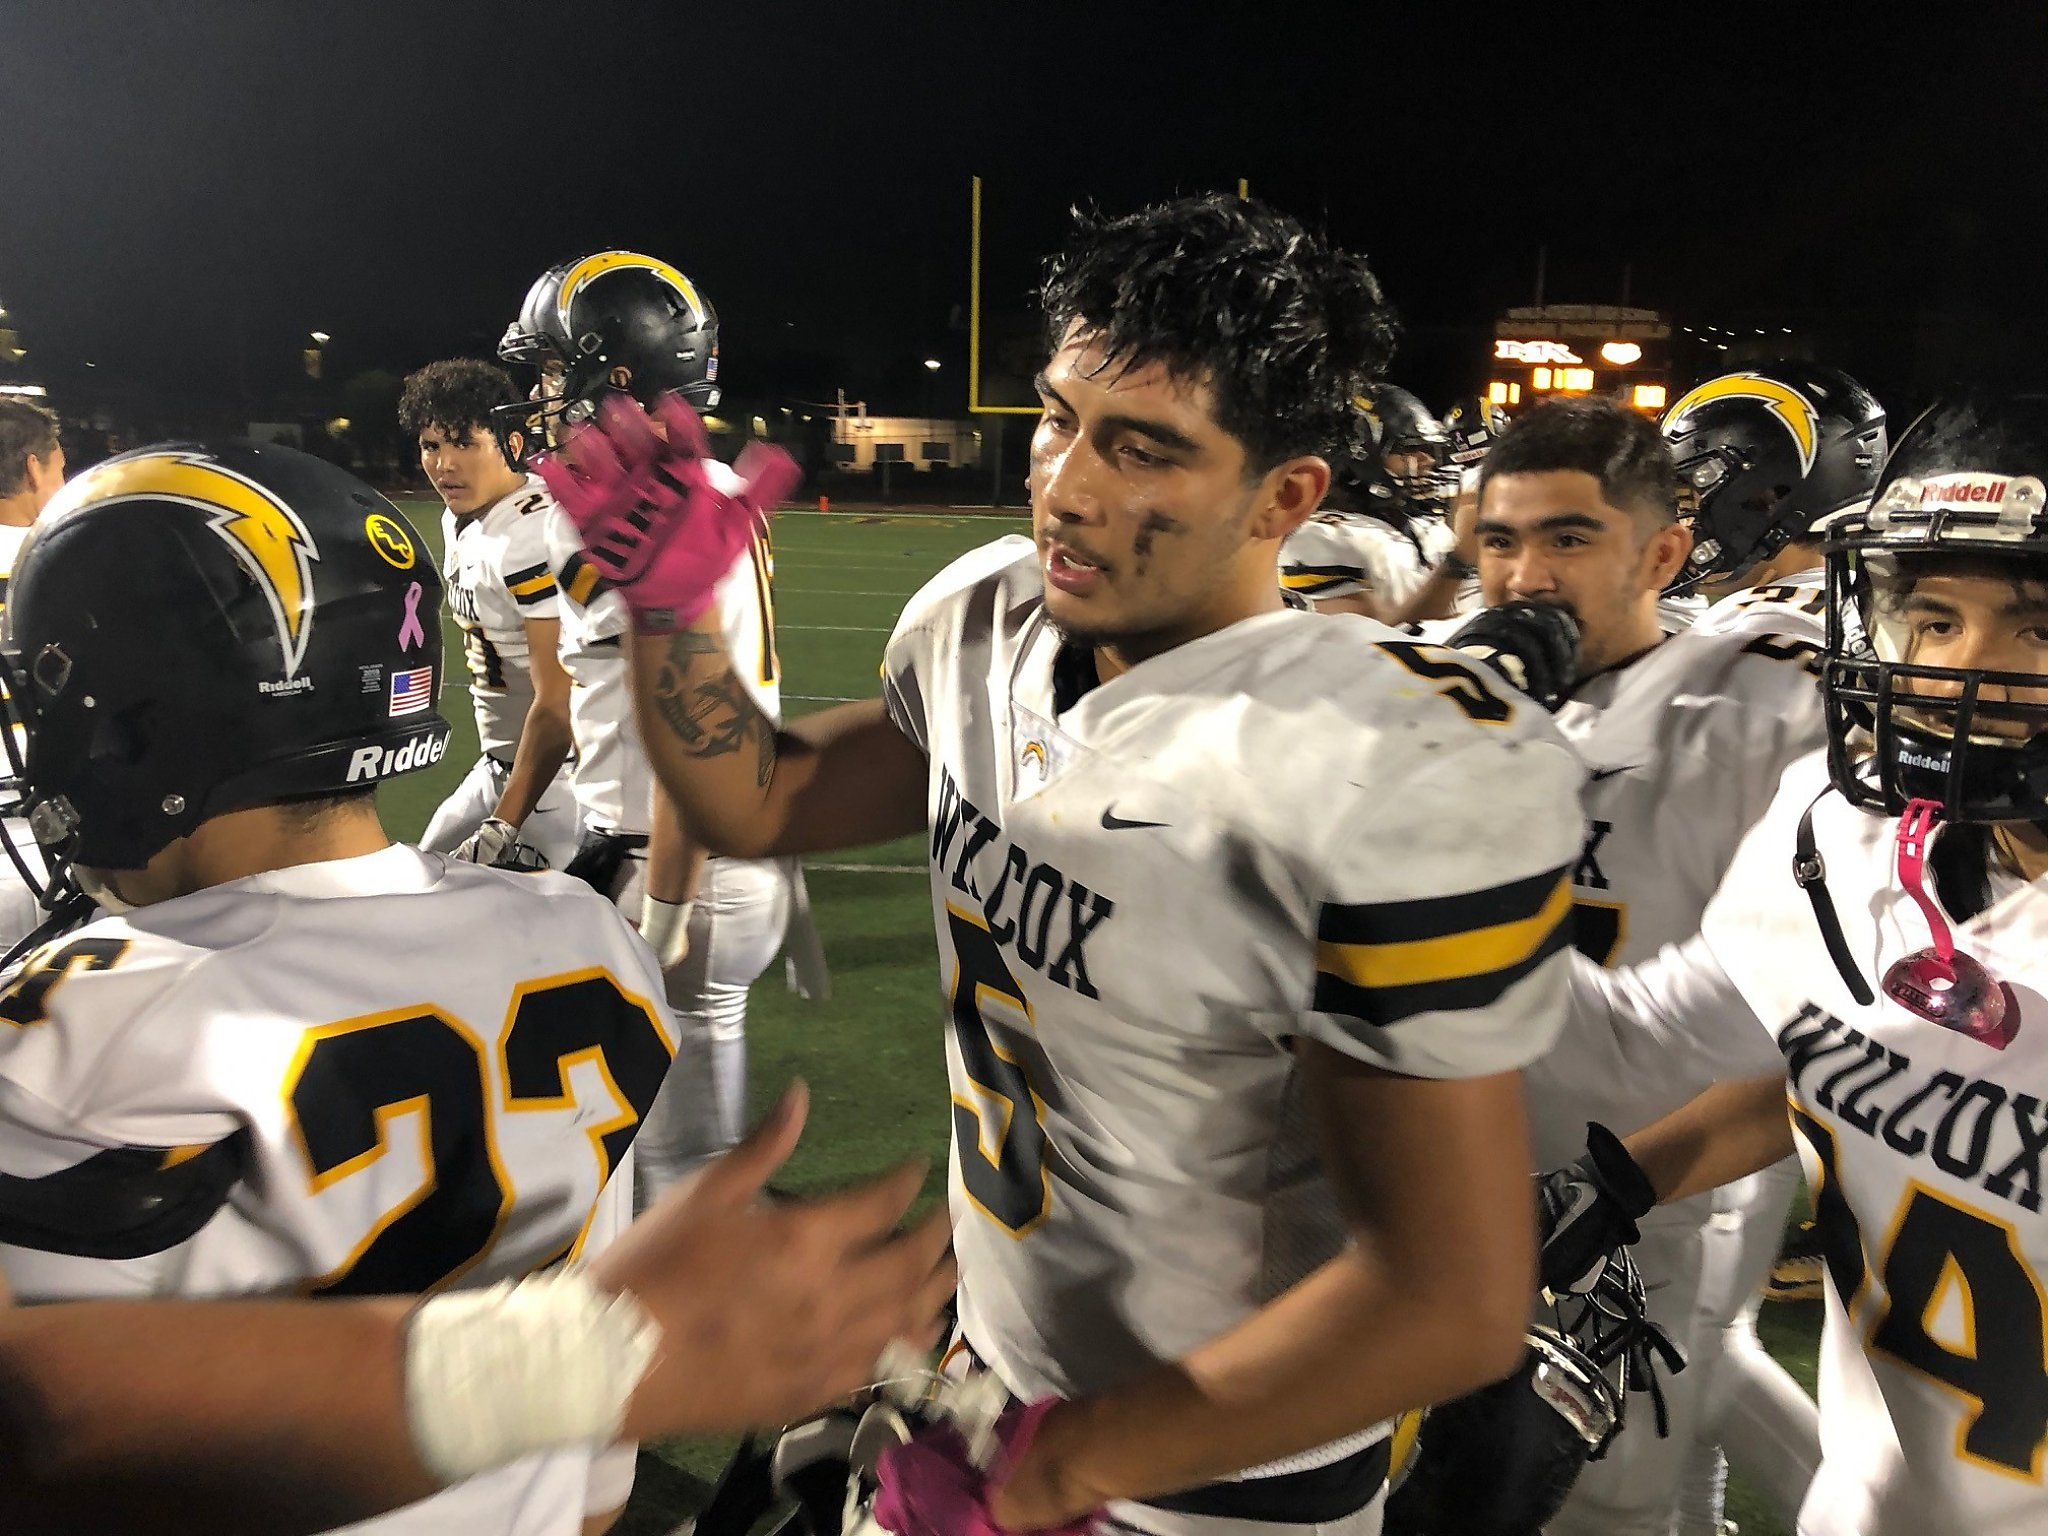 Redemption for Wilcox in CCS football playoffs - San Francisco Chronicle